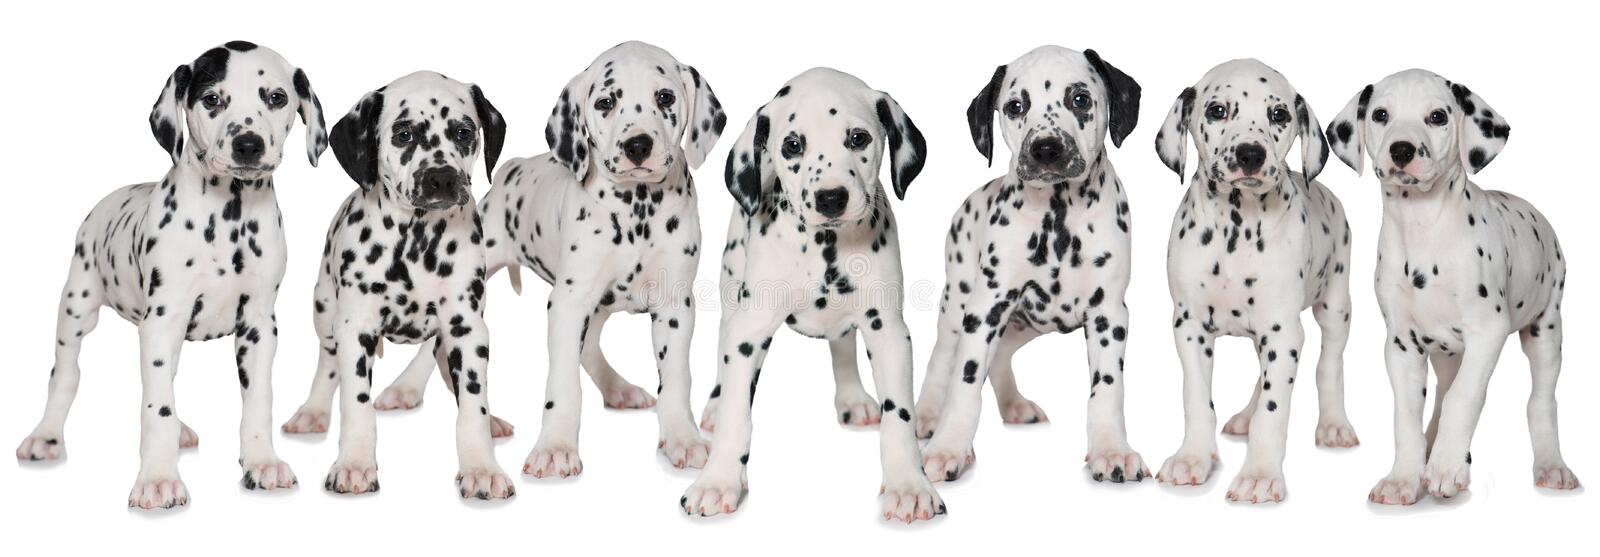 Dalmatian puppies. Seven dalmatian puppies standing side by side royalty free stock photos